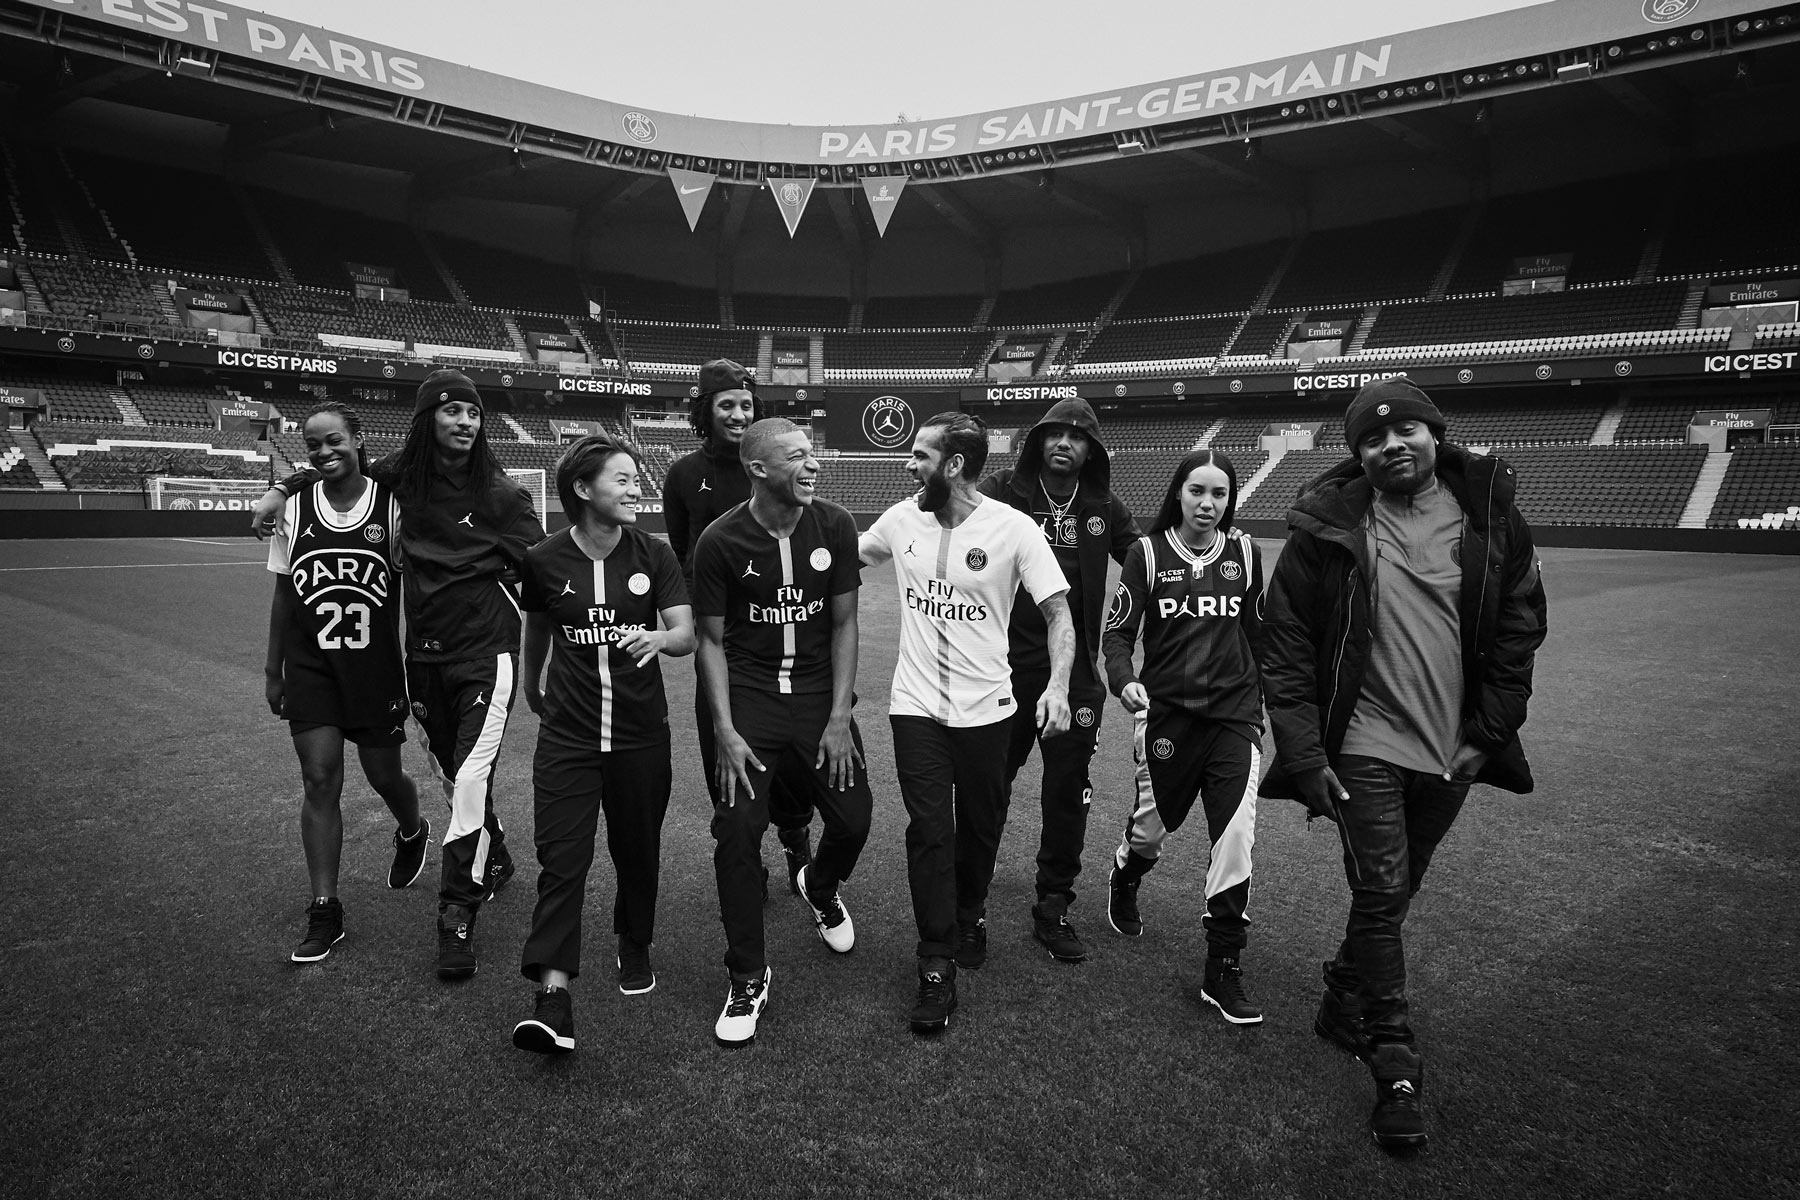 Jordan, PSG, Matthew Wolff, Paris, Collection, Jumpman, Mbappe, Dani Alves, Design